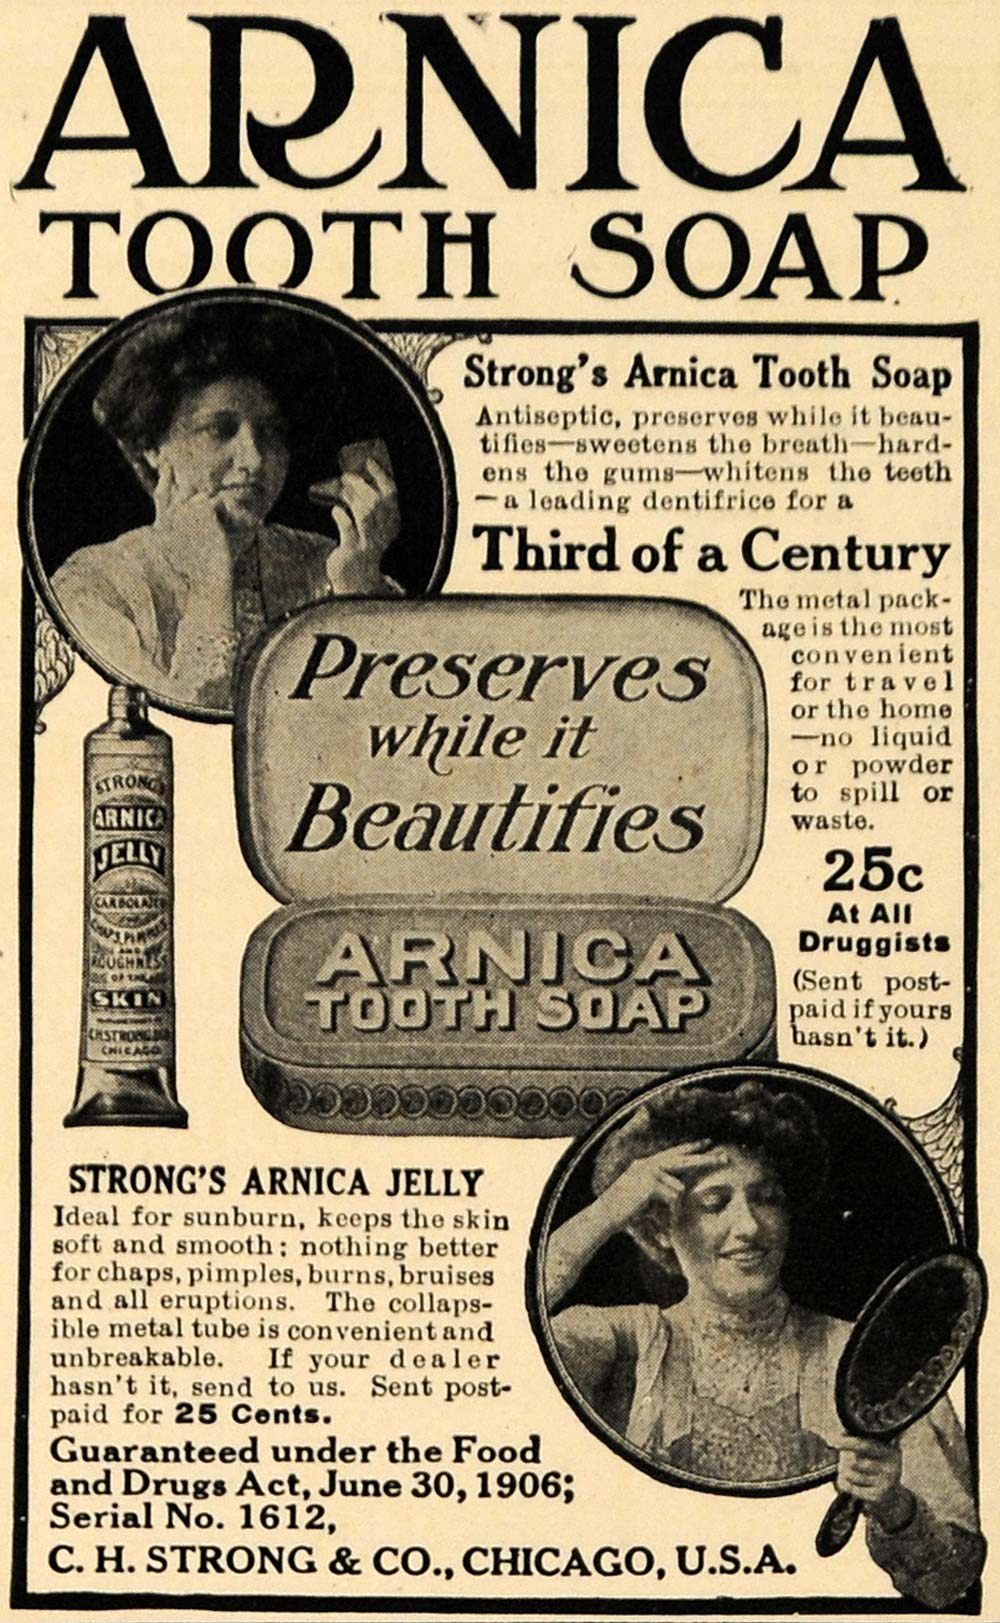 1908 Ad Arnica Tooth Soap Paste Jelly Metal Beauty Drug - ORIGINAL TW1